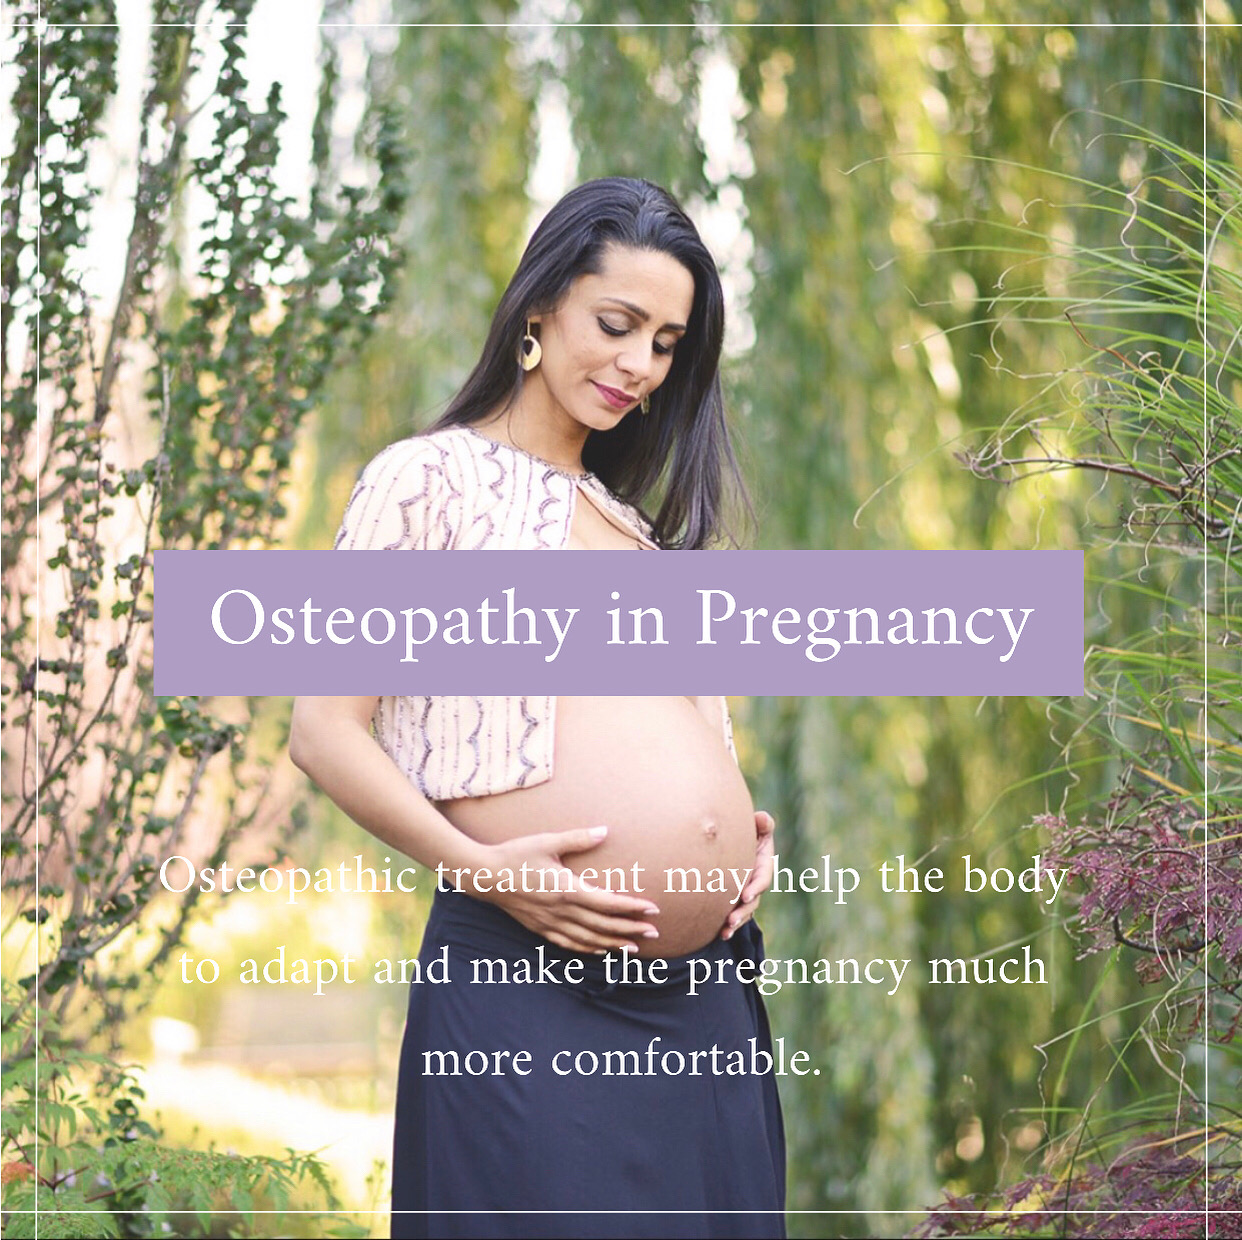 Osteopathy in Pregnancy